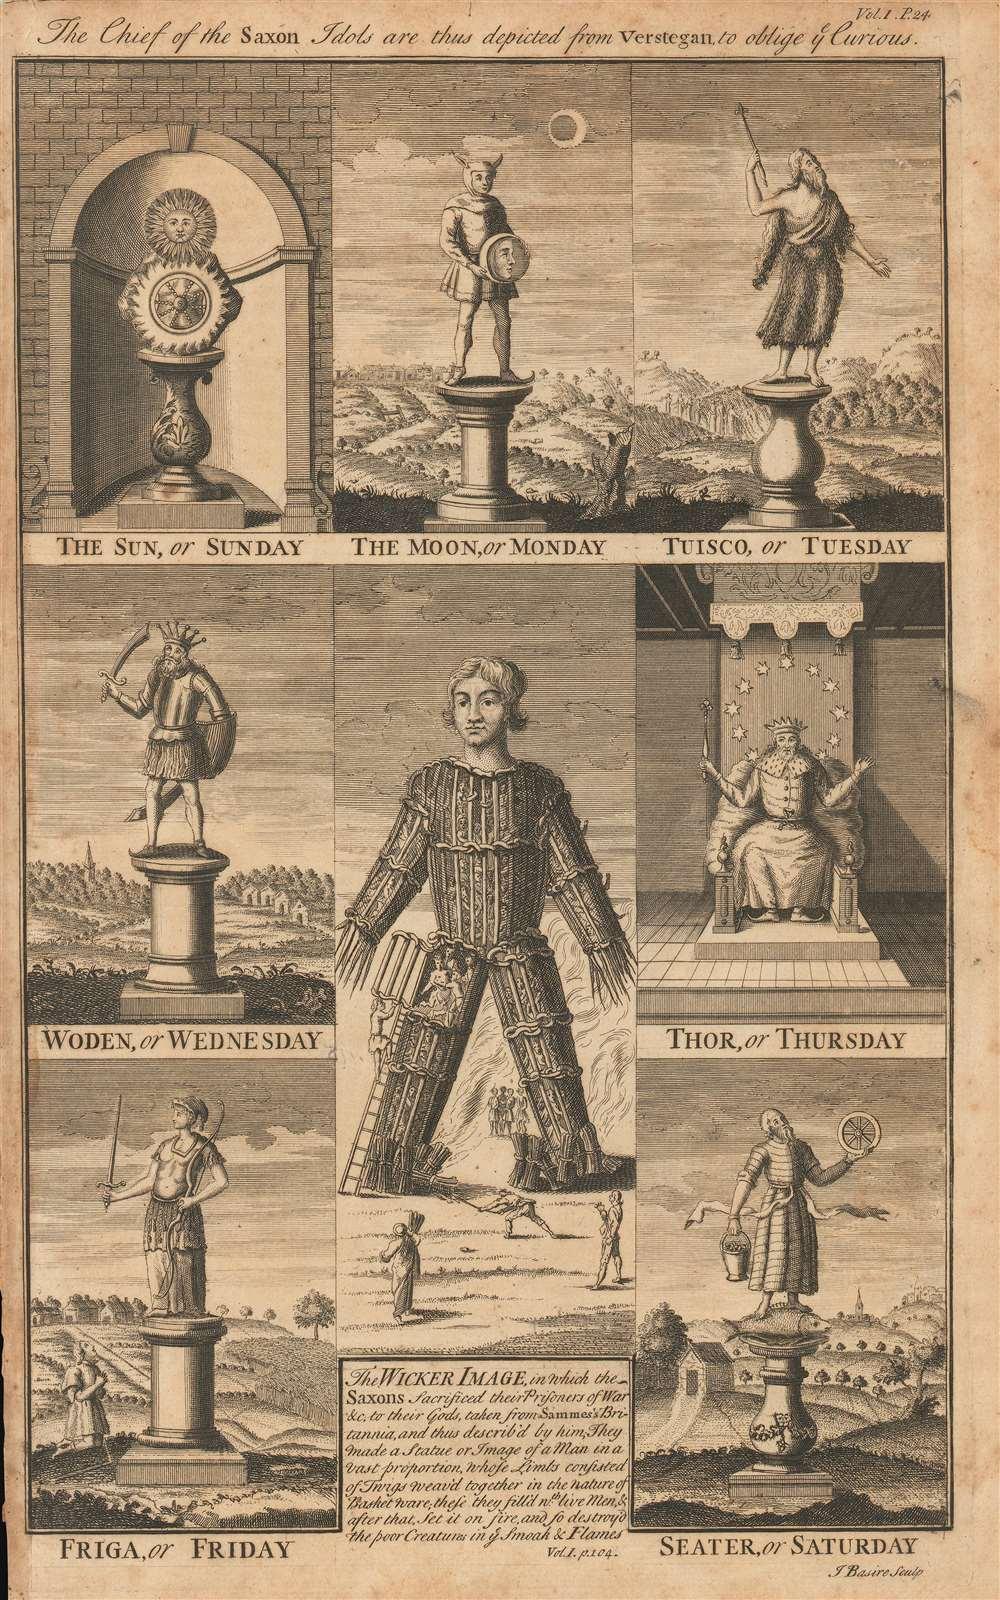 1700 Basire Engraving of Anglo-Saxon Idols and the Wicker Man